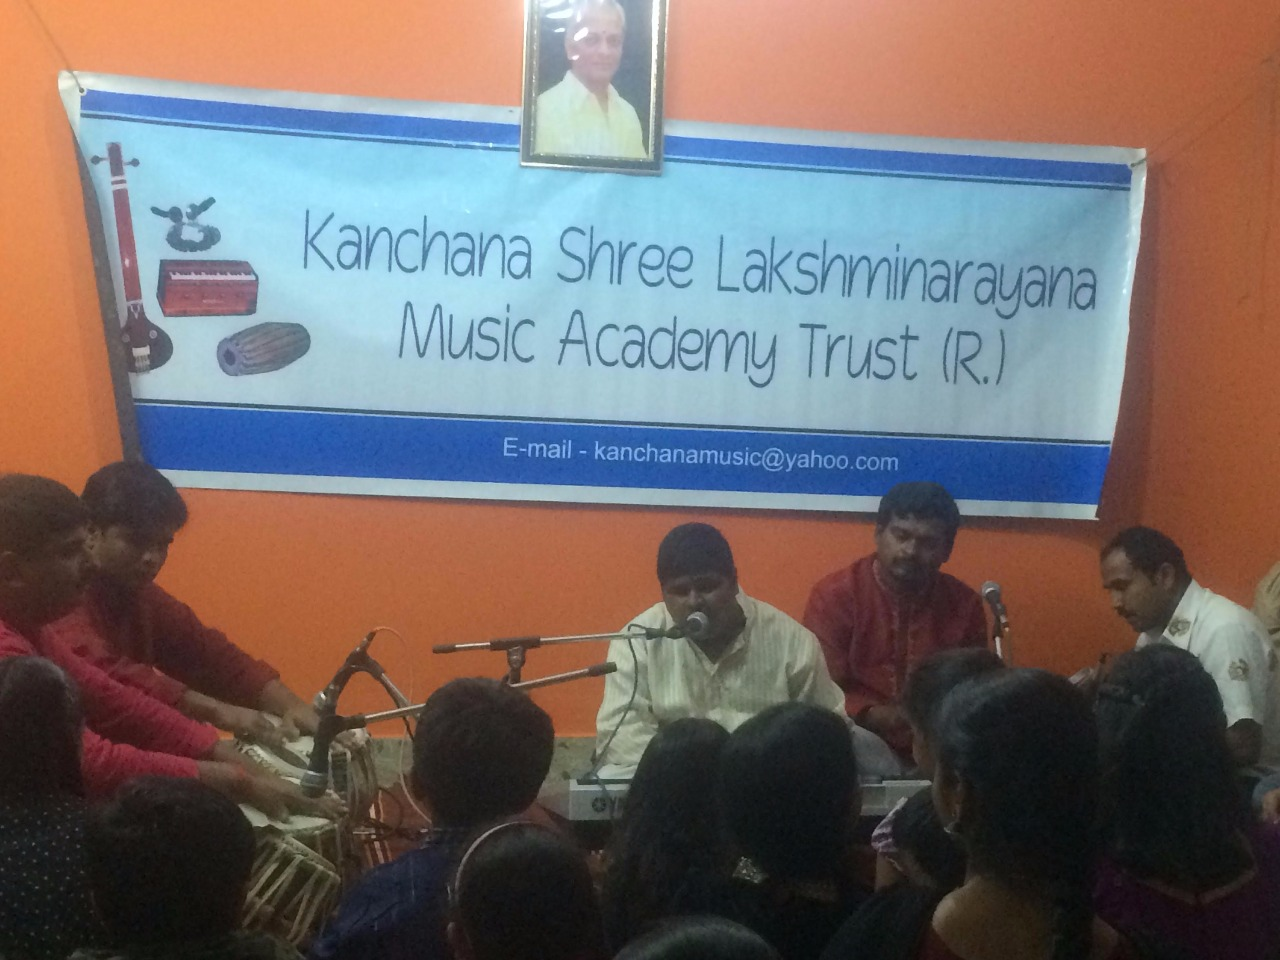 Chamber Concert by Maruthi Prasad - Vocal & Keyboard, Karthik Krishna - Tabla